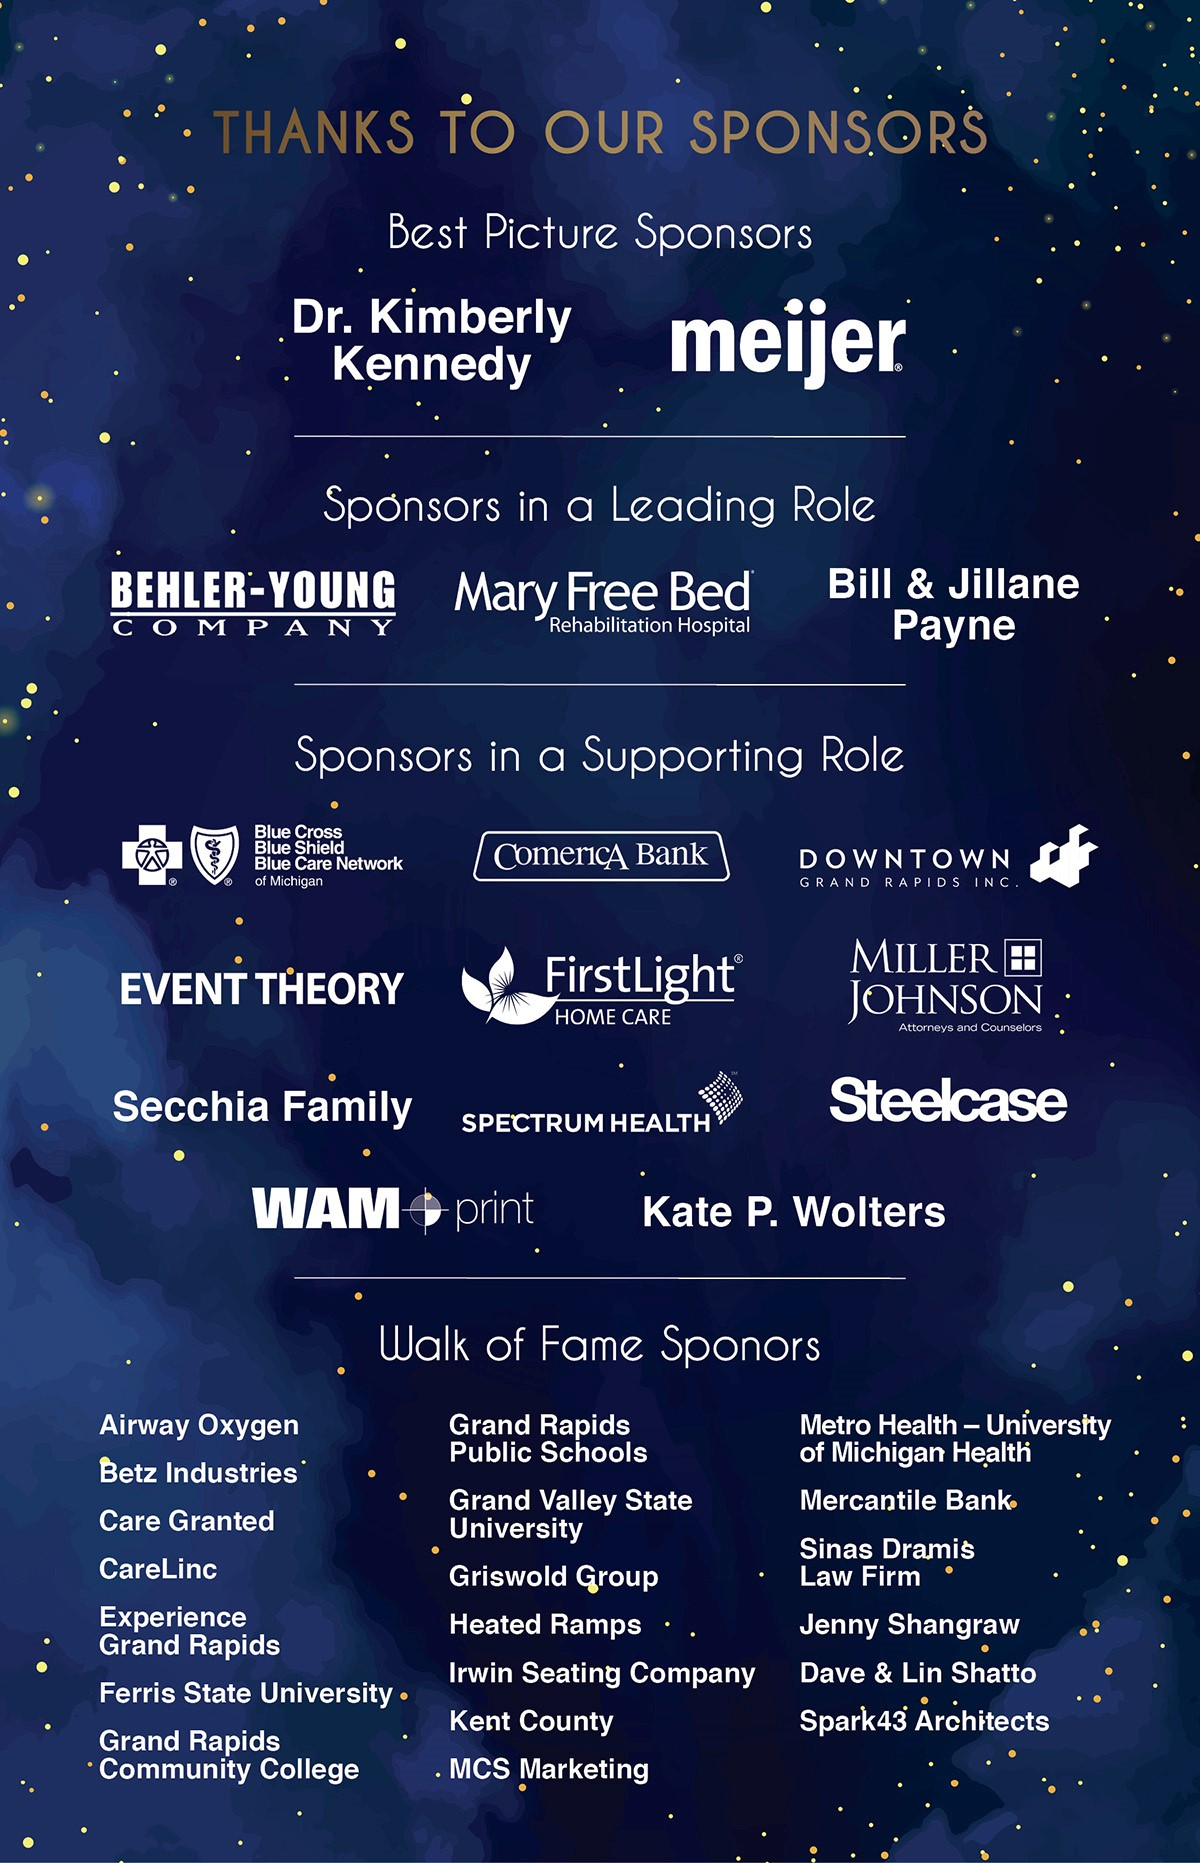 Thanks to our sponsors! Kimberly Kennedy, Meijer, Behler-Young, Mary Free Bed, Bill & Jillane Payne, and many more.